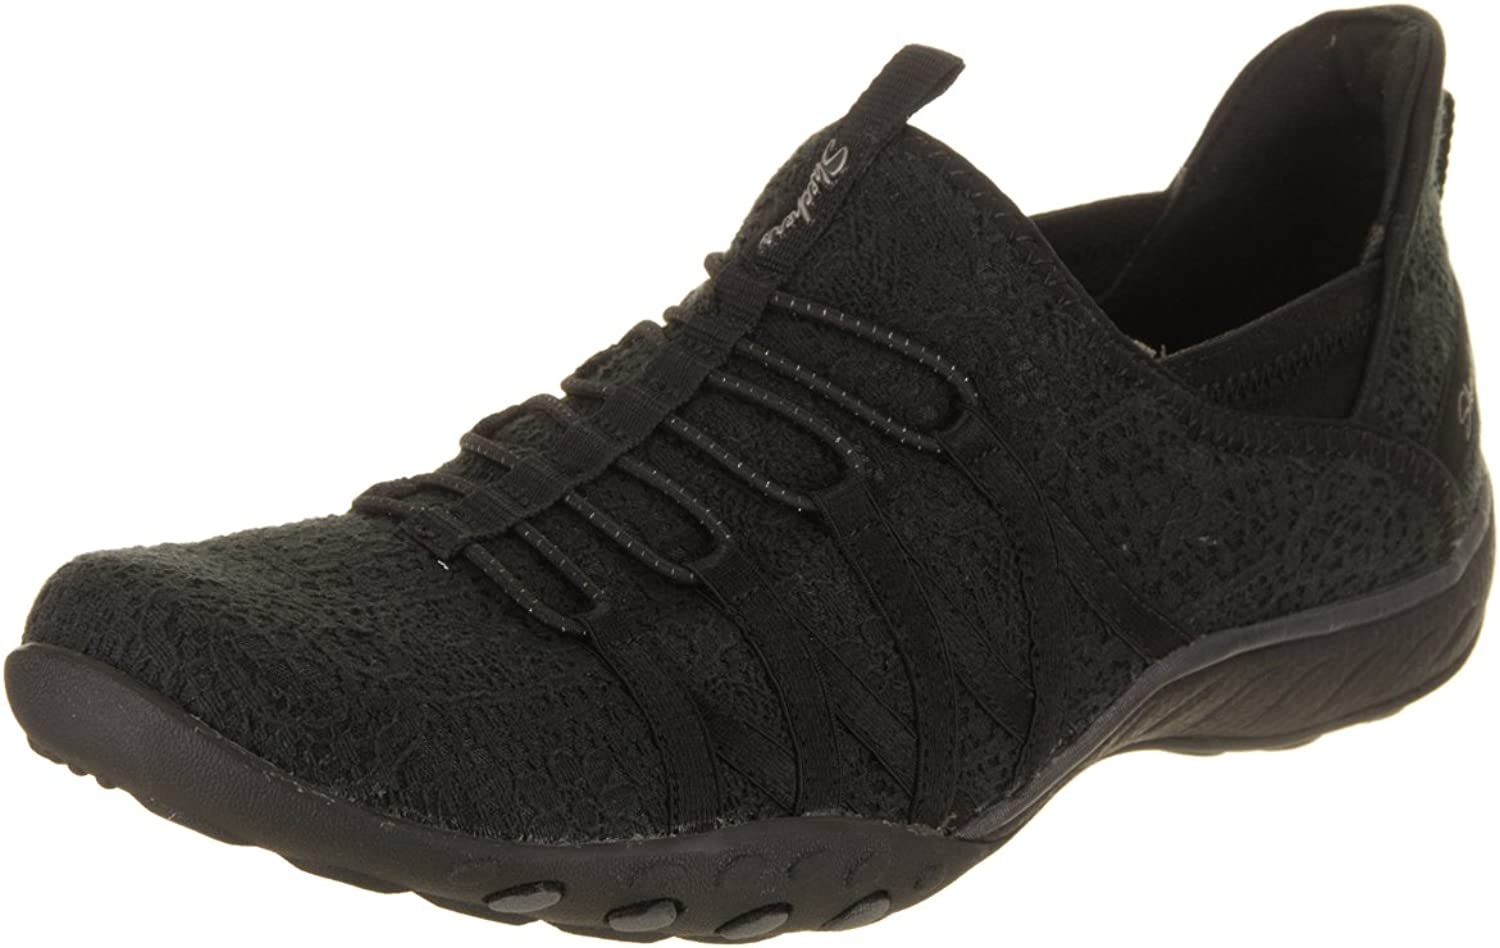 Skechers Relaxed Fit Breathe Easy Harmonia Womens Slip On Bungee Sneakers